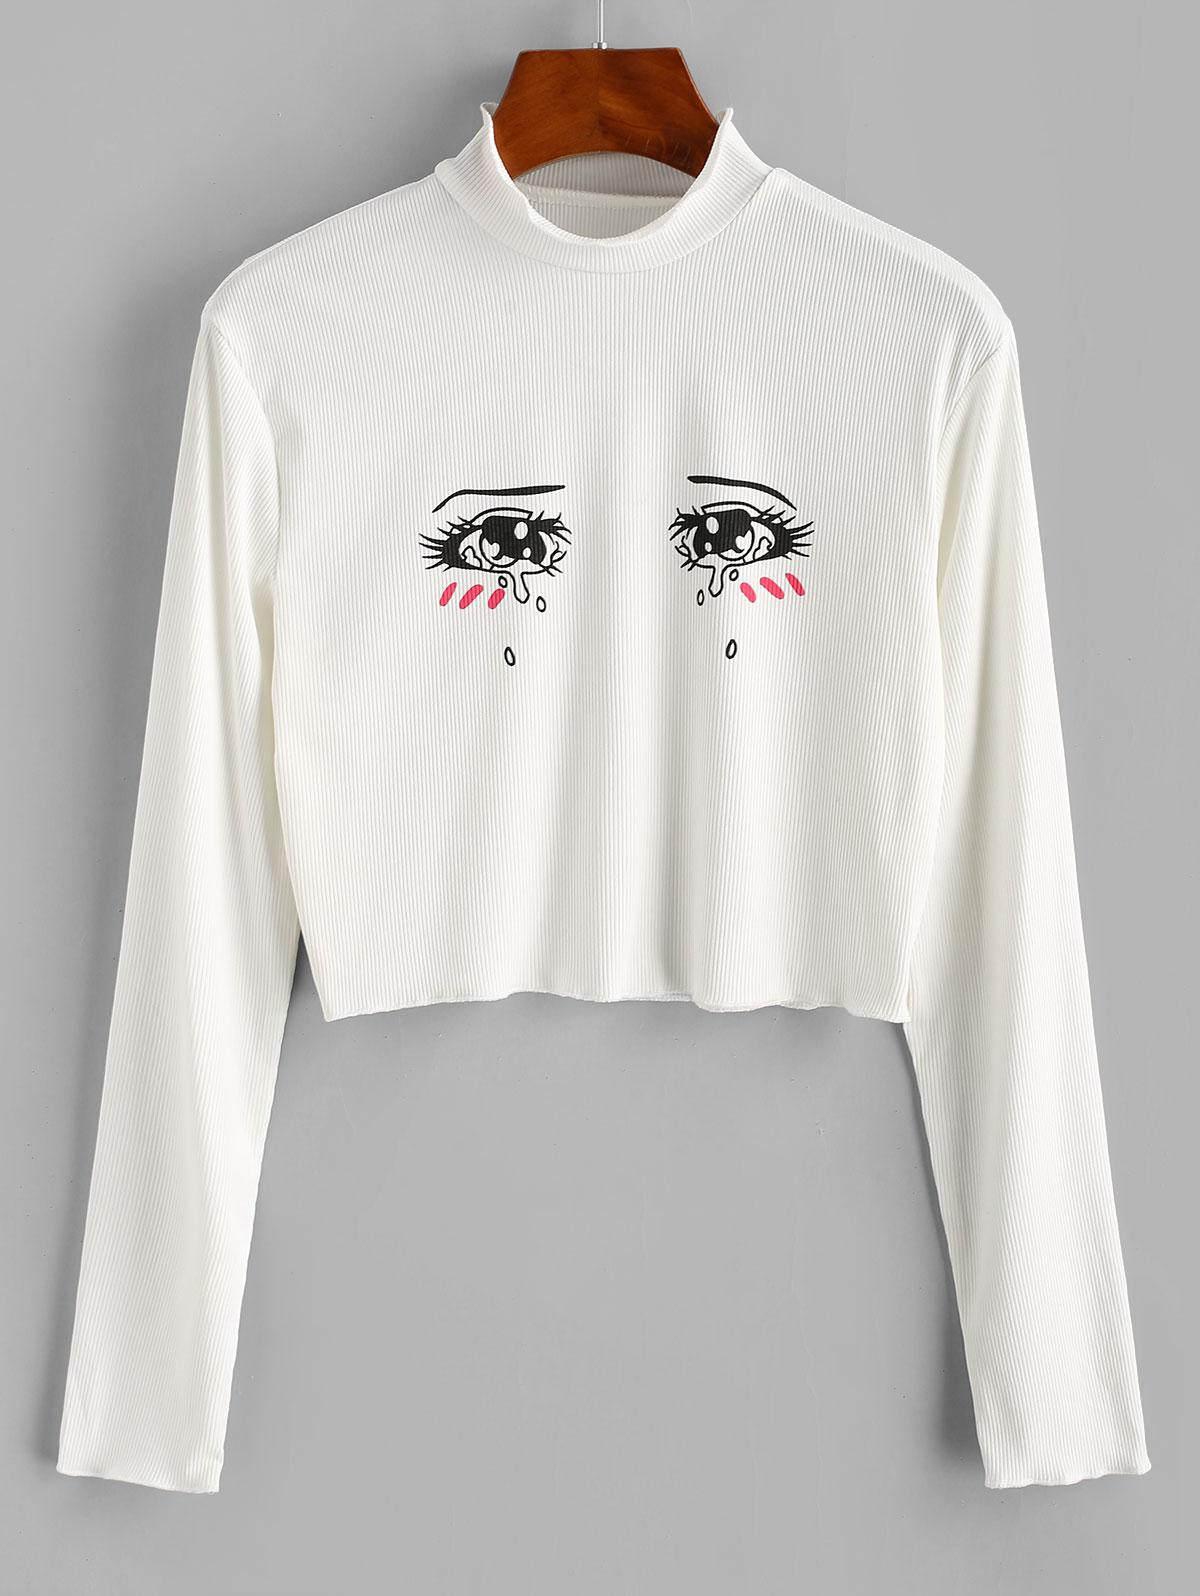 Ribbed Tears Eyes Graphic Cropped Tee